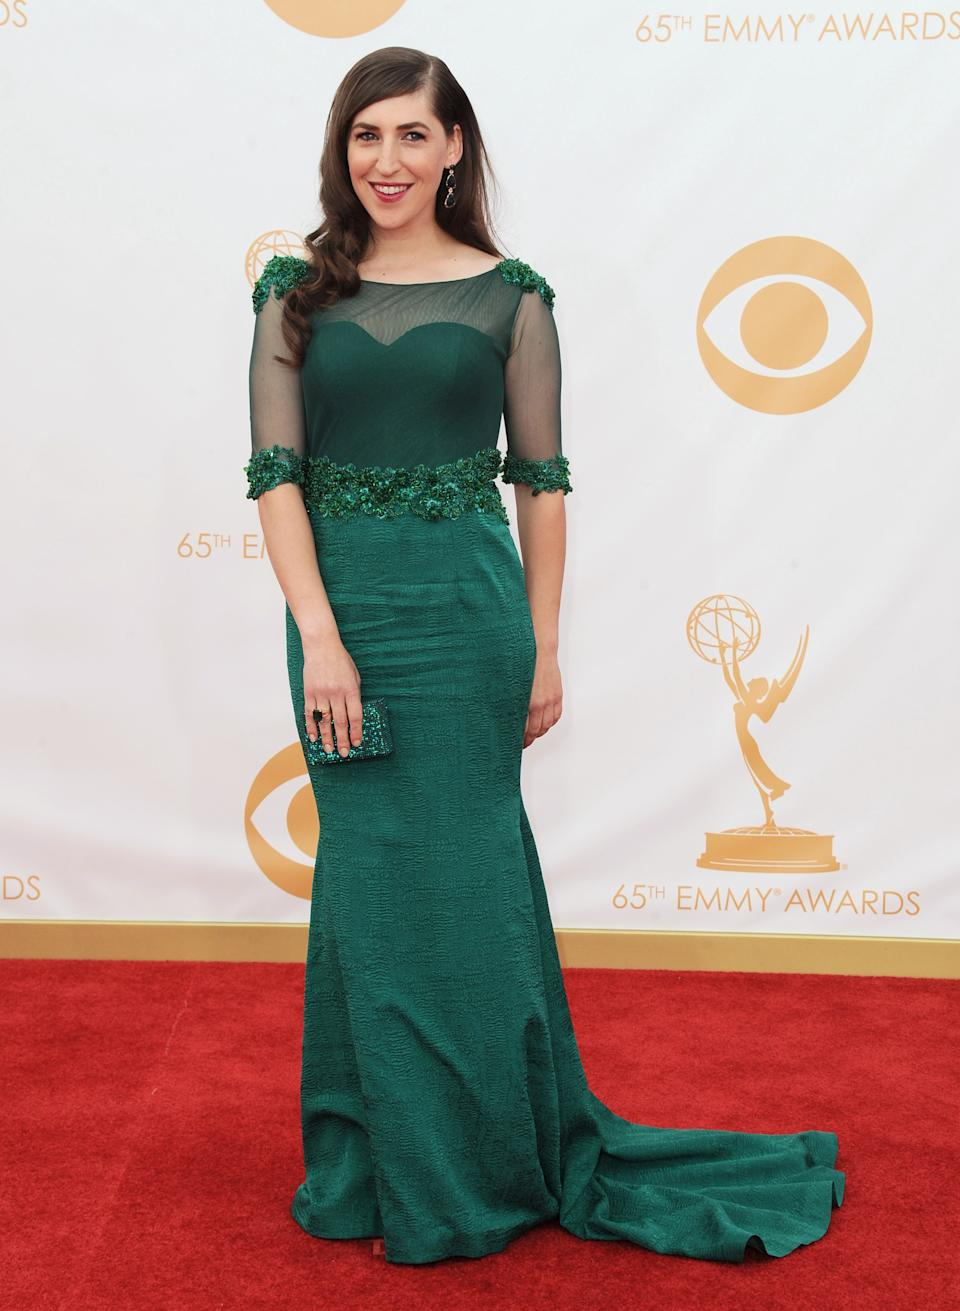 Mayim Bialik arrives at the 65th Primetime Emmy Awards at Nokia Theatre on Sunday, Sept. 22, 2013, in Los Angeles. (Photo by Jordan Strauss/Invision/AP)